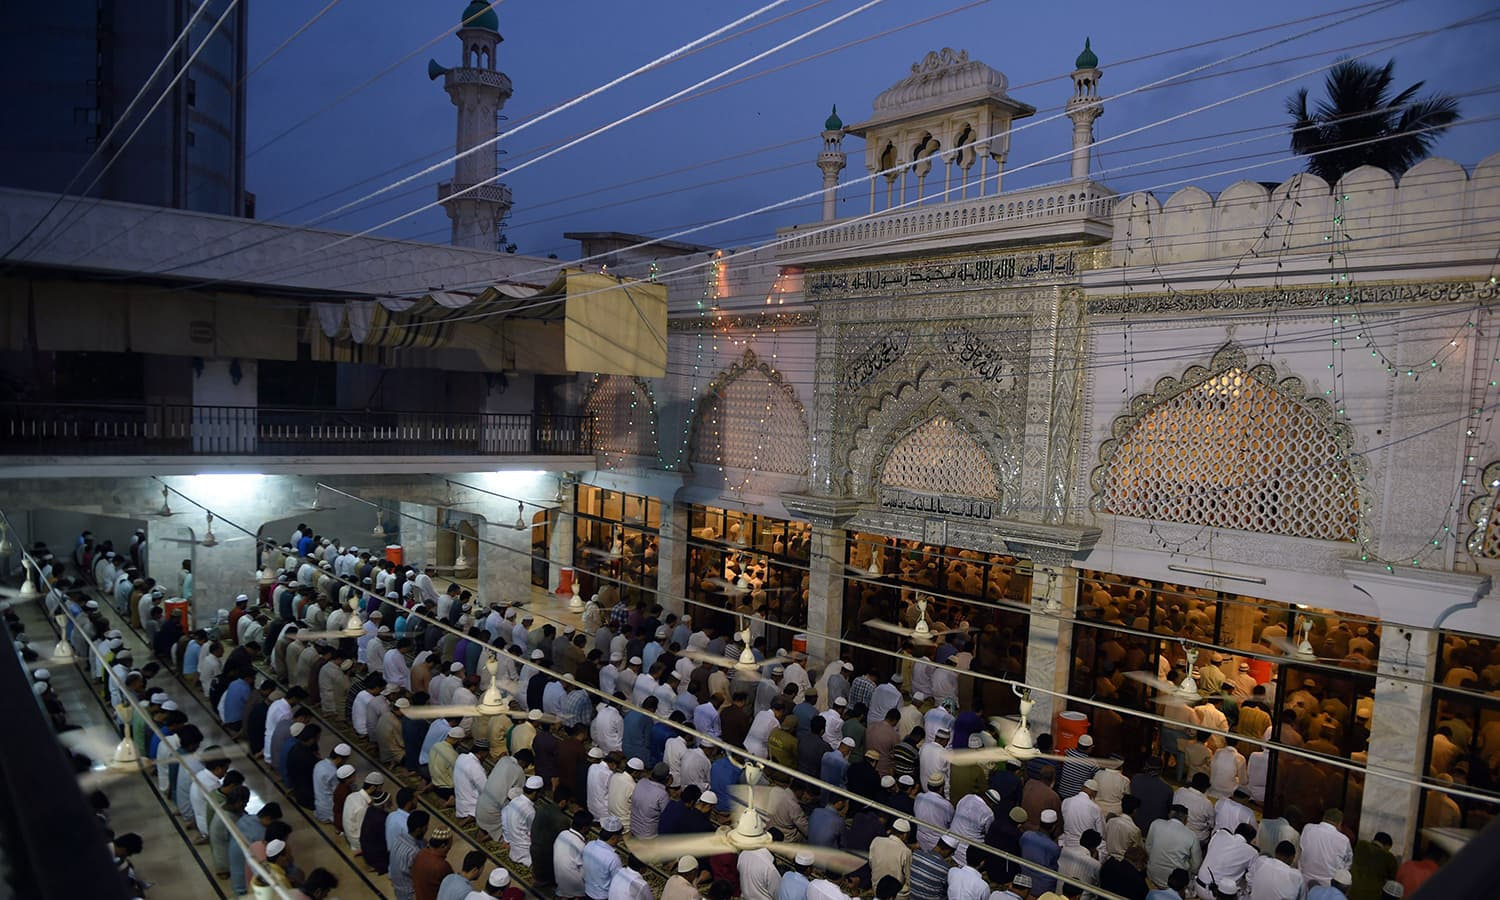 Pakistani Muslims offer special prayers at a mosque to mark Shab-e-Barat or the night of forgiveness in Karachi on June 2, 2015. Muslims believe that if someone prays to God throughout the night and seeks forgiveness for all the sins he may have committed, he could be forgiven. The entire night of prayer is devoted to asking for forgiveness for the past year and for good fortune in the year to come. AFP PHOTO/Asif HASSAN